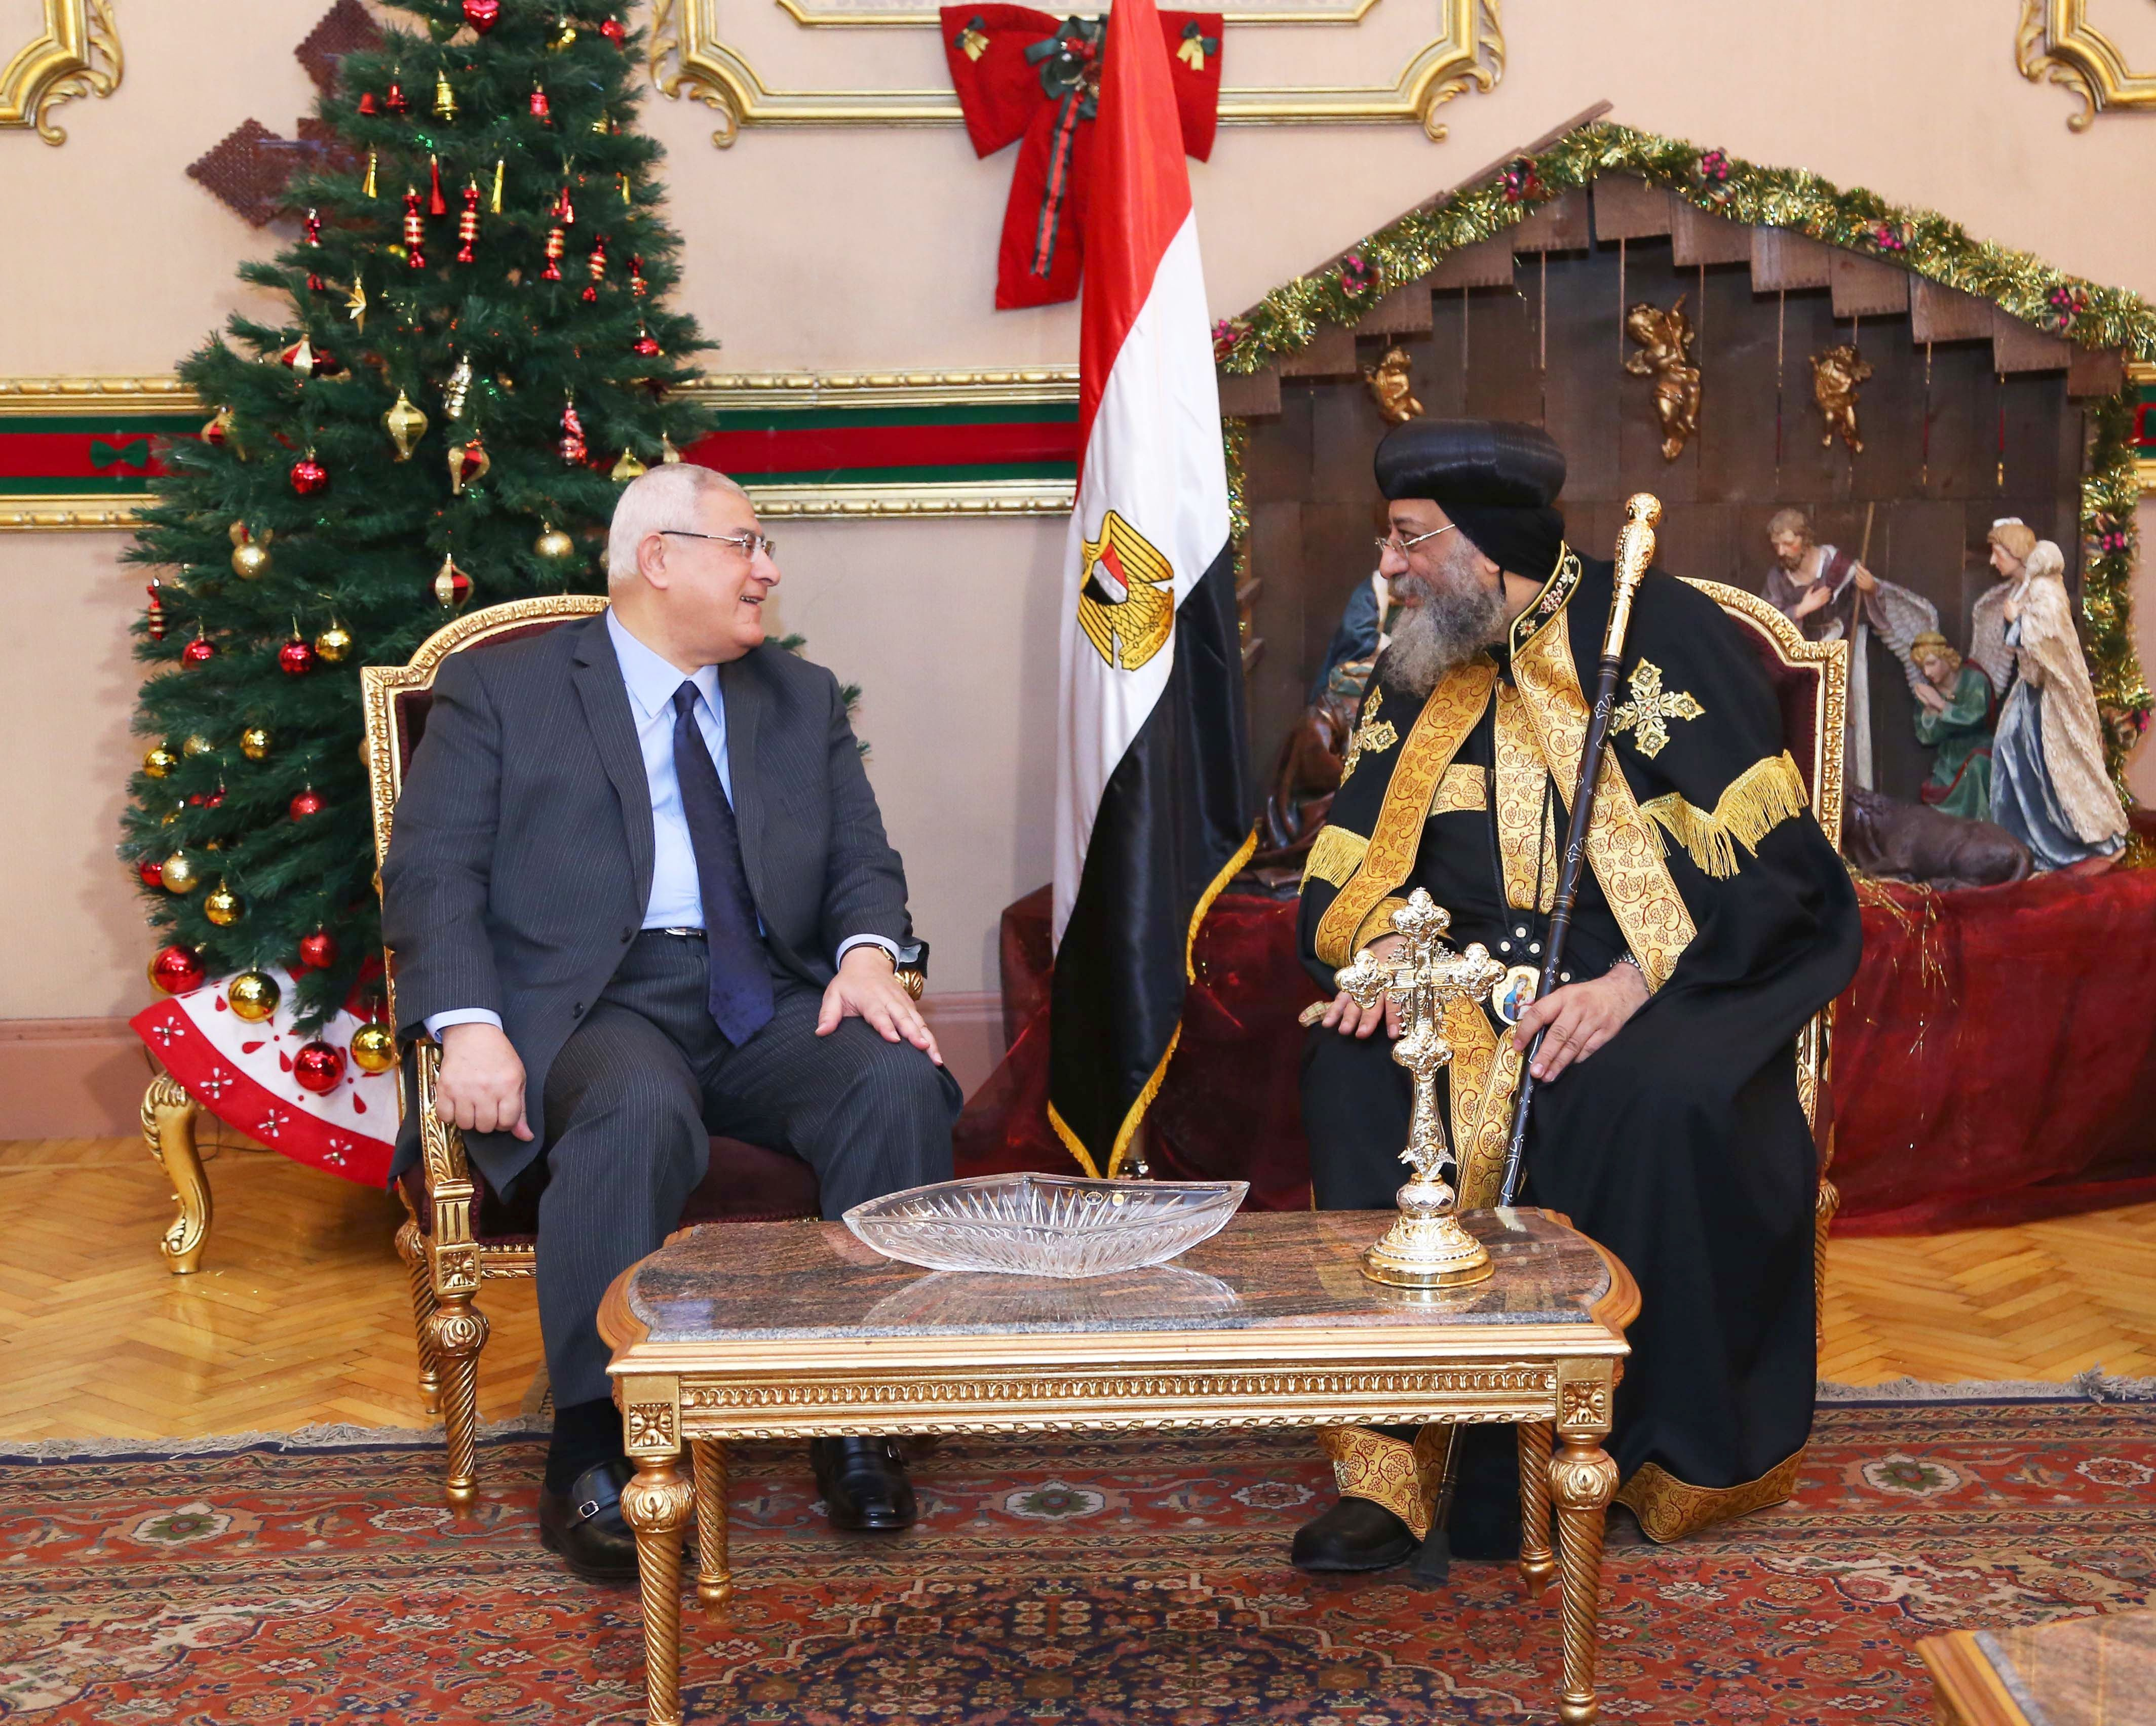 """A handout picture released by Egyptian Presidency shows interim President Adli Mansour (L) wishing the leader of the Egyptian Coptic Orthodox Church, Pope Tawadros II, a happy Christmas at the Saint Mark's Coptic headquarters in Cairo's Abbassiya neighbourhood, during his visit on January 5, 2014, as the Coptic church celebrates Orthodox Christmas.  AFP PHOTO / HO / EGYPTIAN PRESIDENCY  === RESTRICTED TO EDITORIAL USE - MANDATORY CREDIT """"AFP PHOTO/HO/EGYPTIAN PRESIDENCY"""" - NO MARKETING NO ADVERTISING CAMPAIGNS - DISTRIBUTED AS A SERVICE TO CLIENTS ==="""